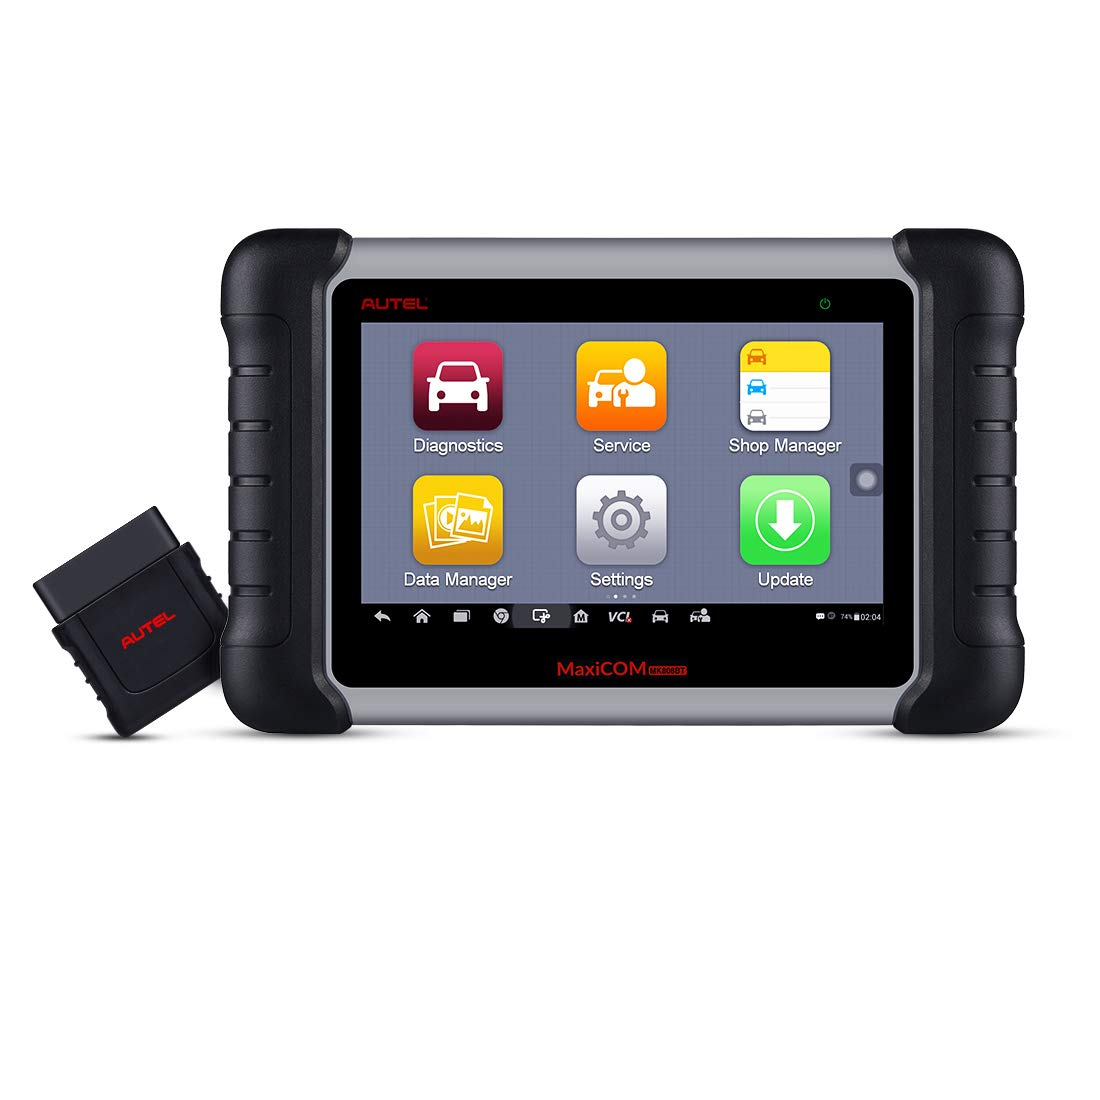 Autel OBD2 Scanner MaxiCOM MK808BT Diagnostic Tool, Upgraded Version of MK808, with MaxiVCI Supports Full System Scan & IMMO/EPB/SAS/BMS/TPMS/DPF